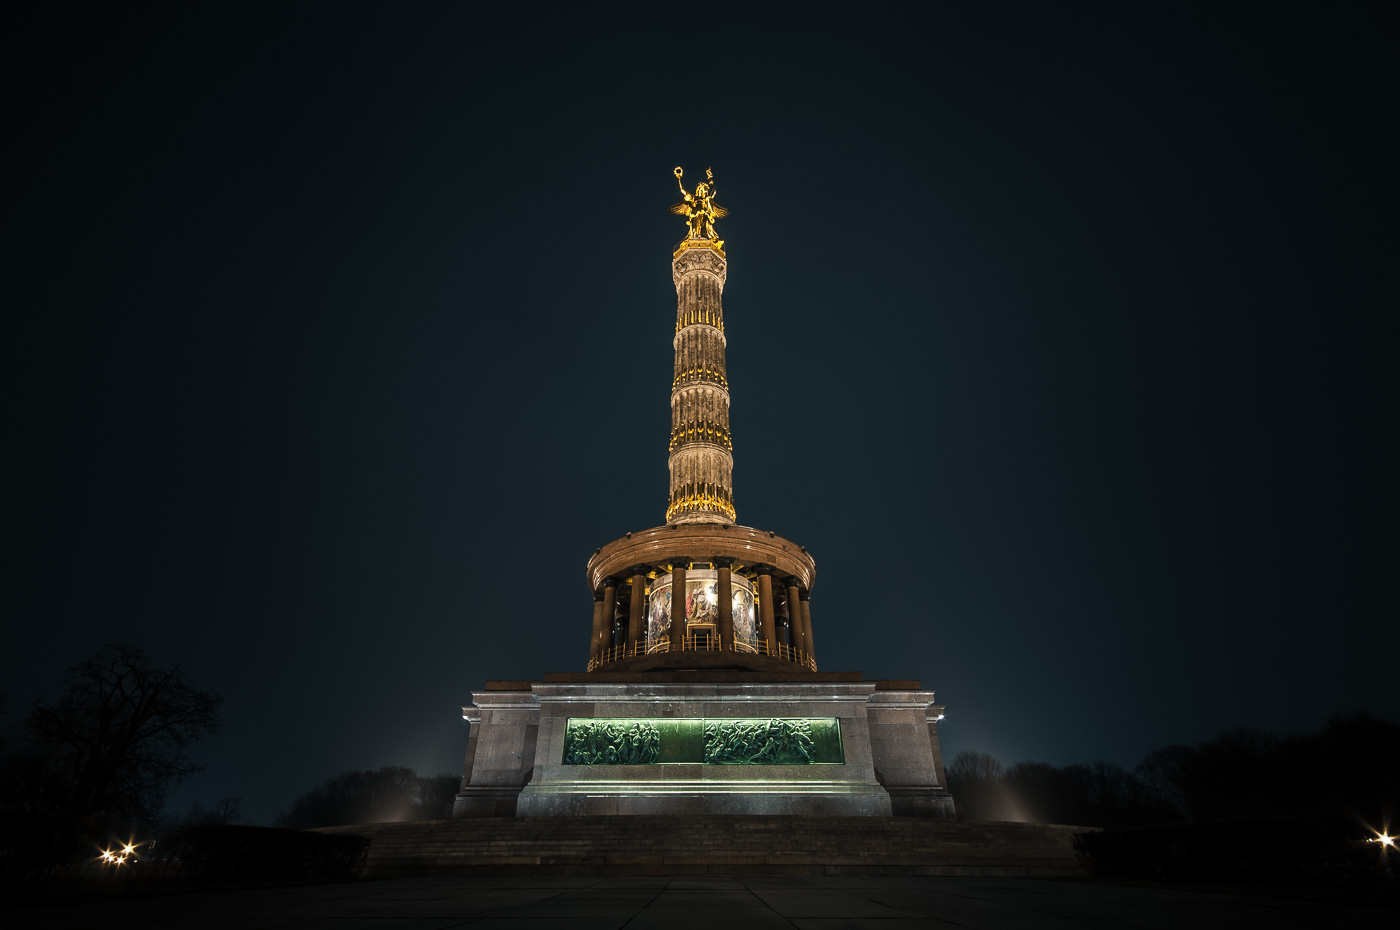 Siegessäule at night